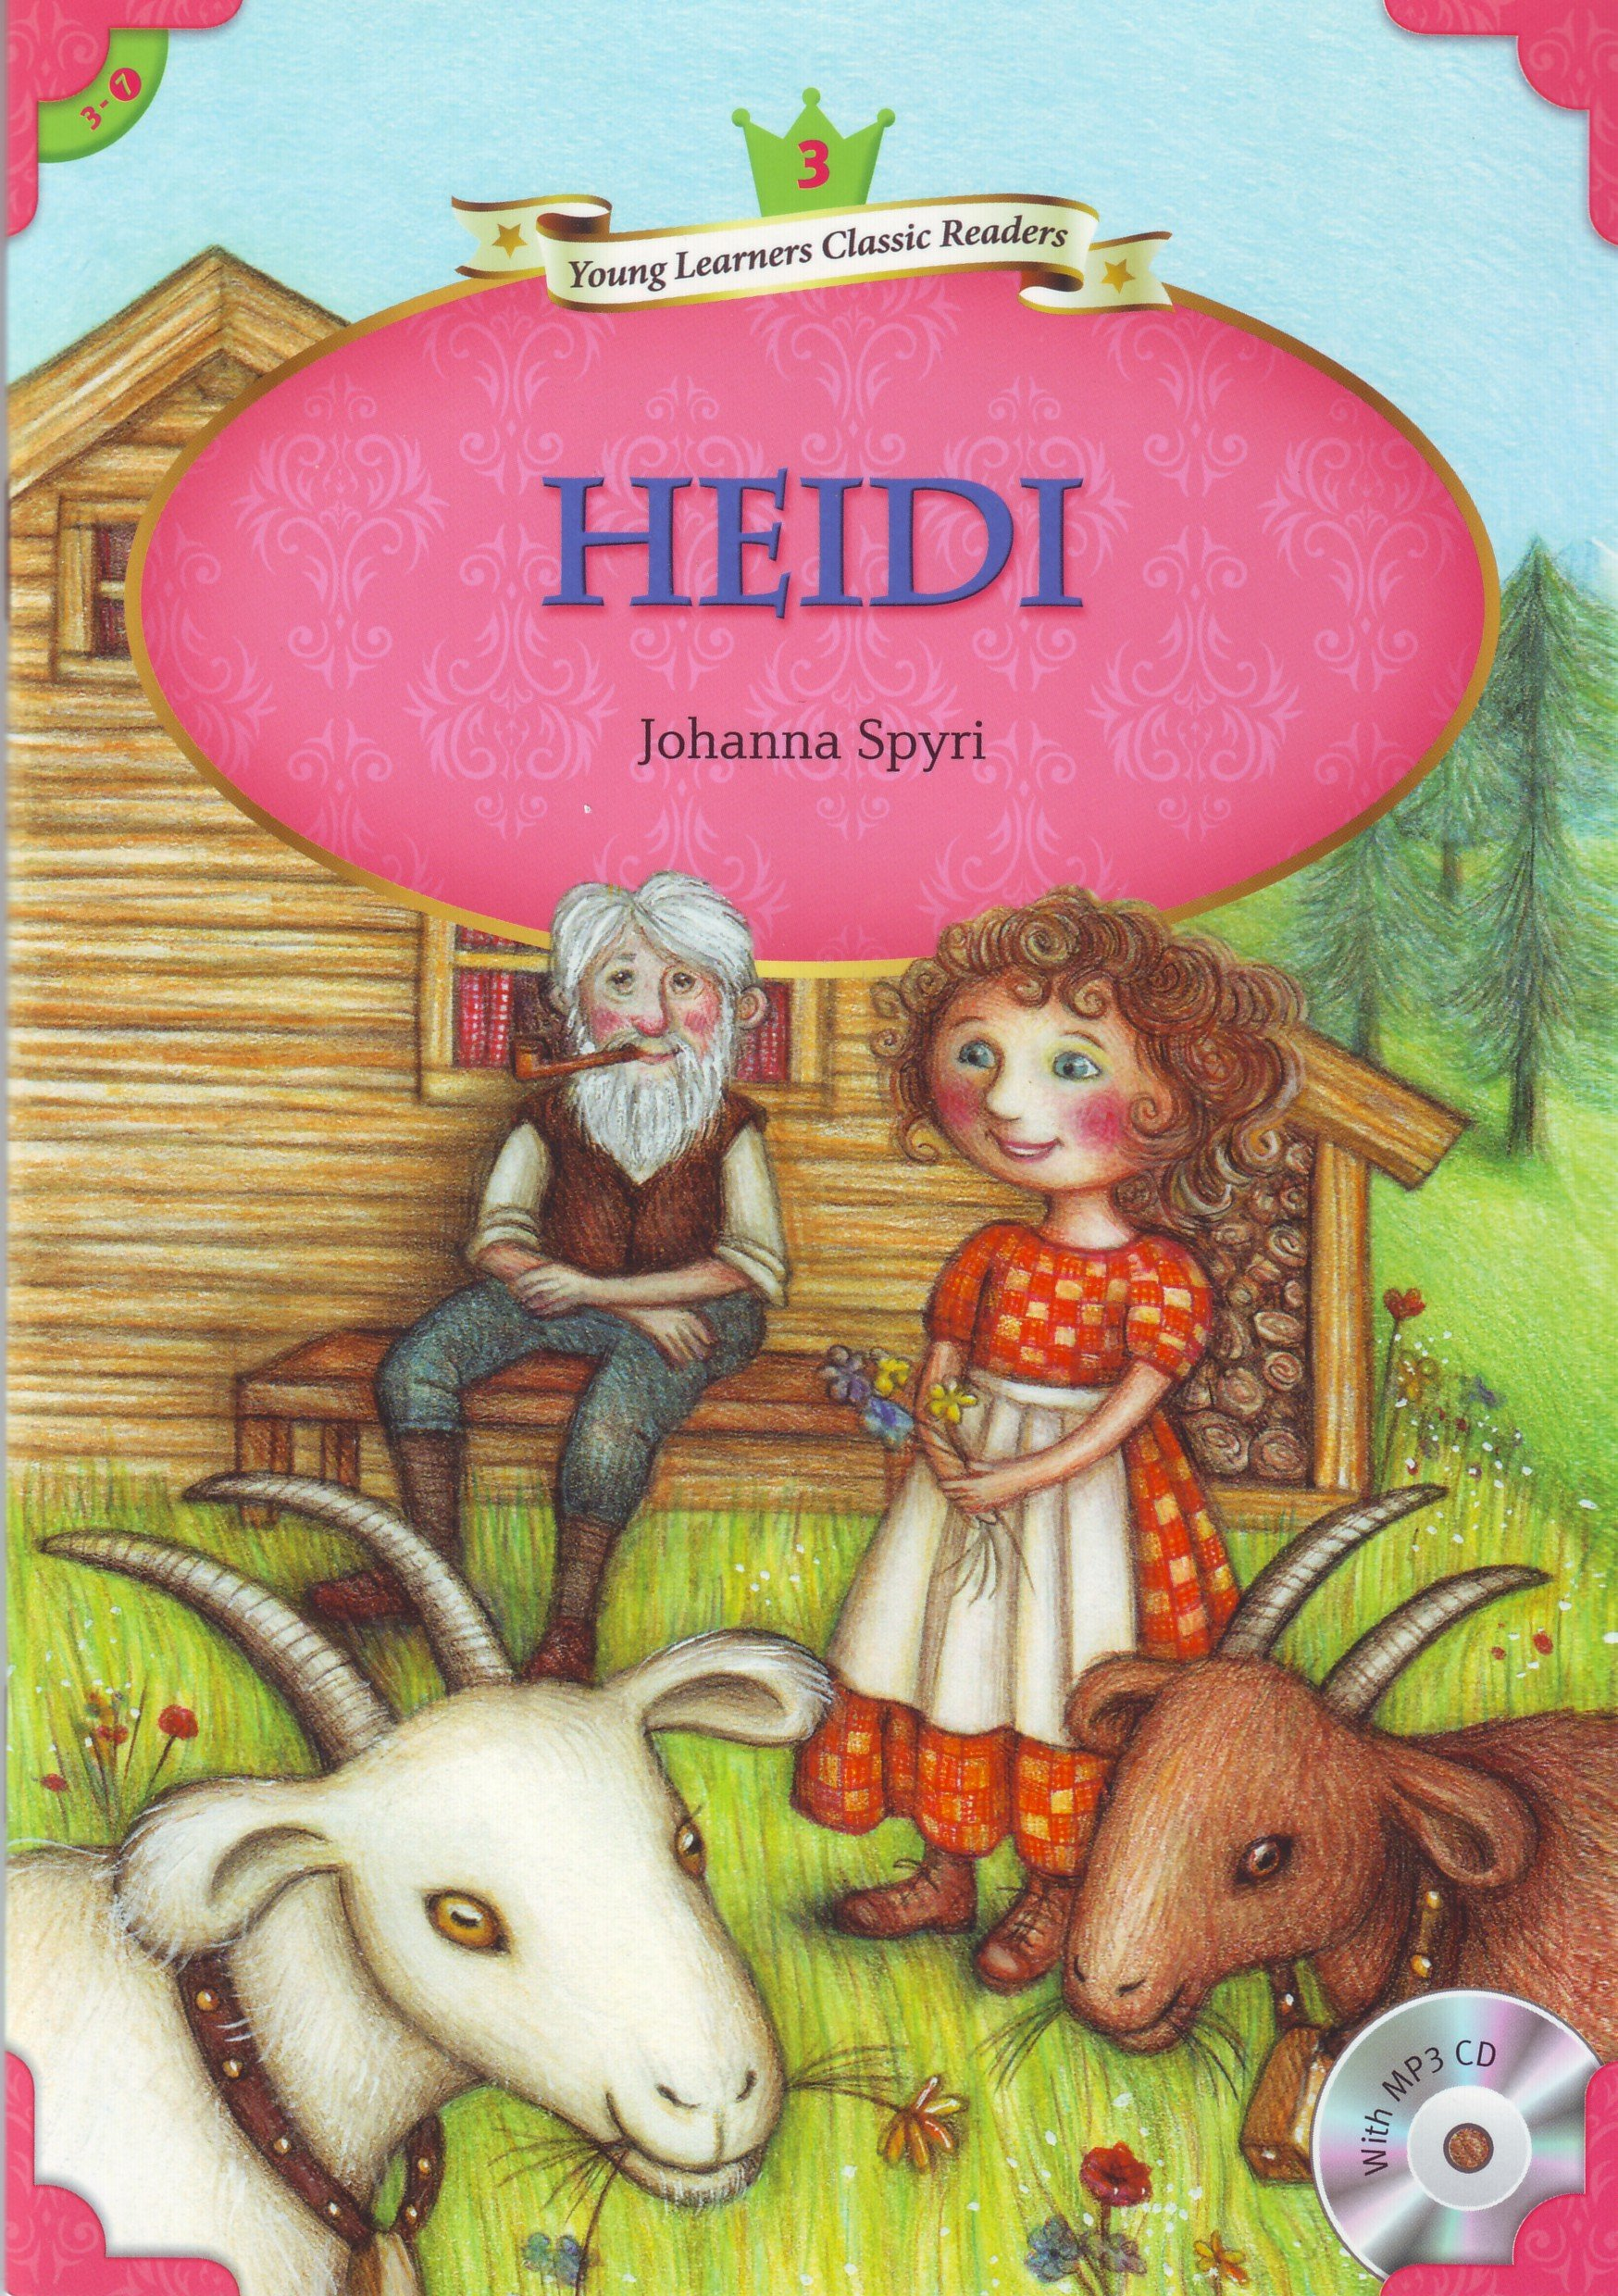 Read Online Young Learners Classic Readers: Heidi (Beginning Level 3 w/MP3 Audio CD) PDF